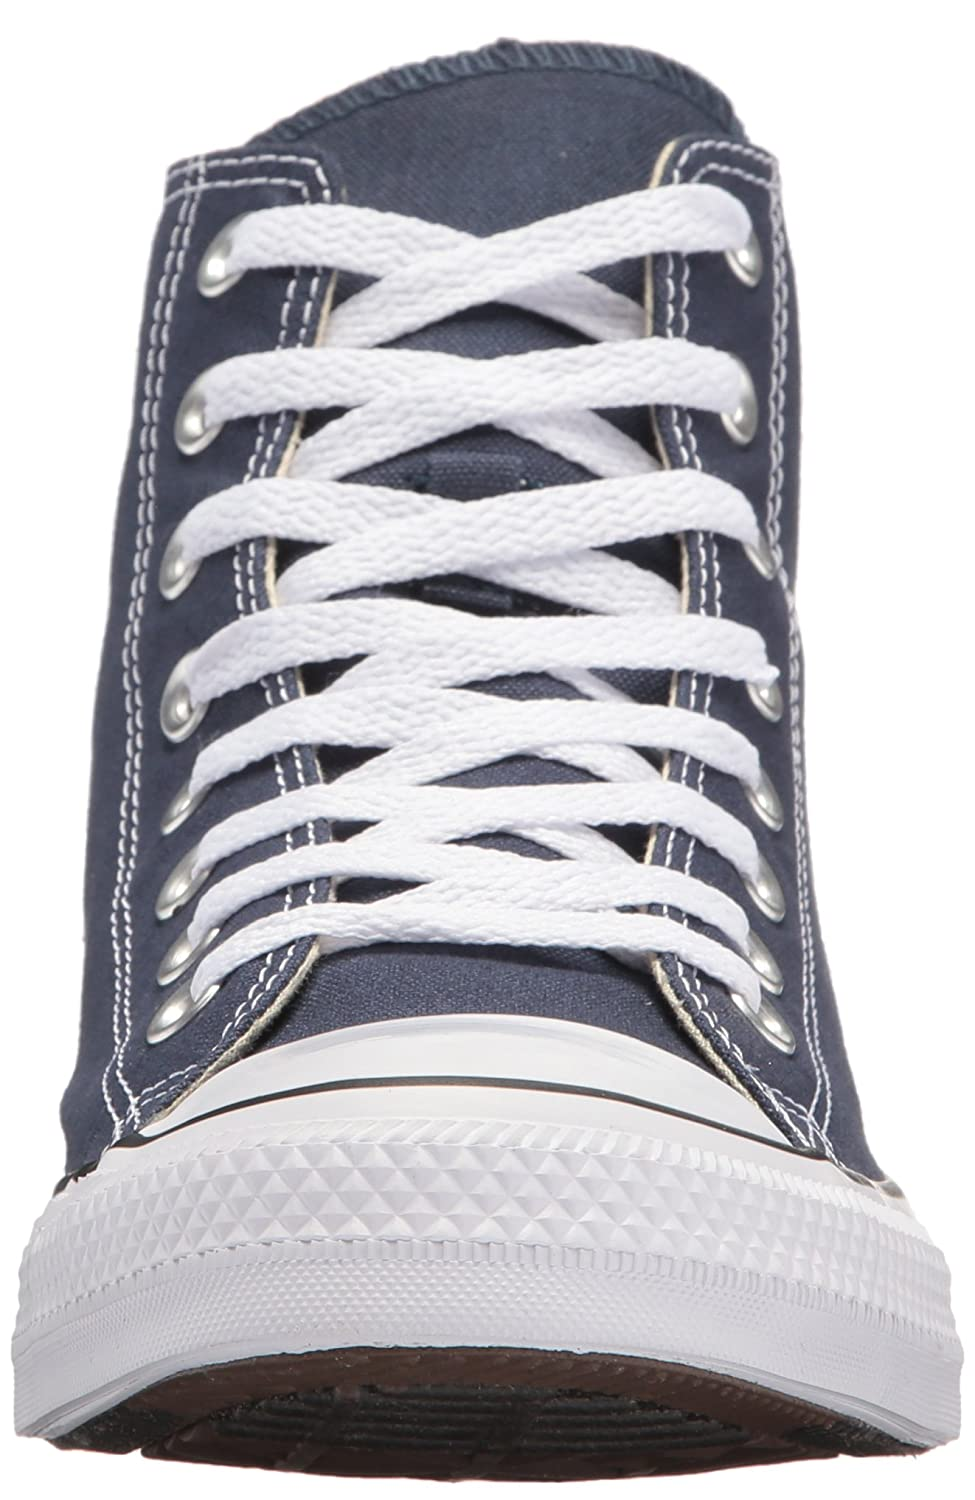 Converse Chuck Taylor All Star High Top B0001Y8ZI4 Women|Navy 17 US Men/19 US Women|Navy B0001Y8ZI4 baf80a